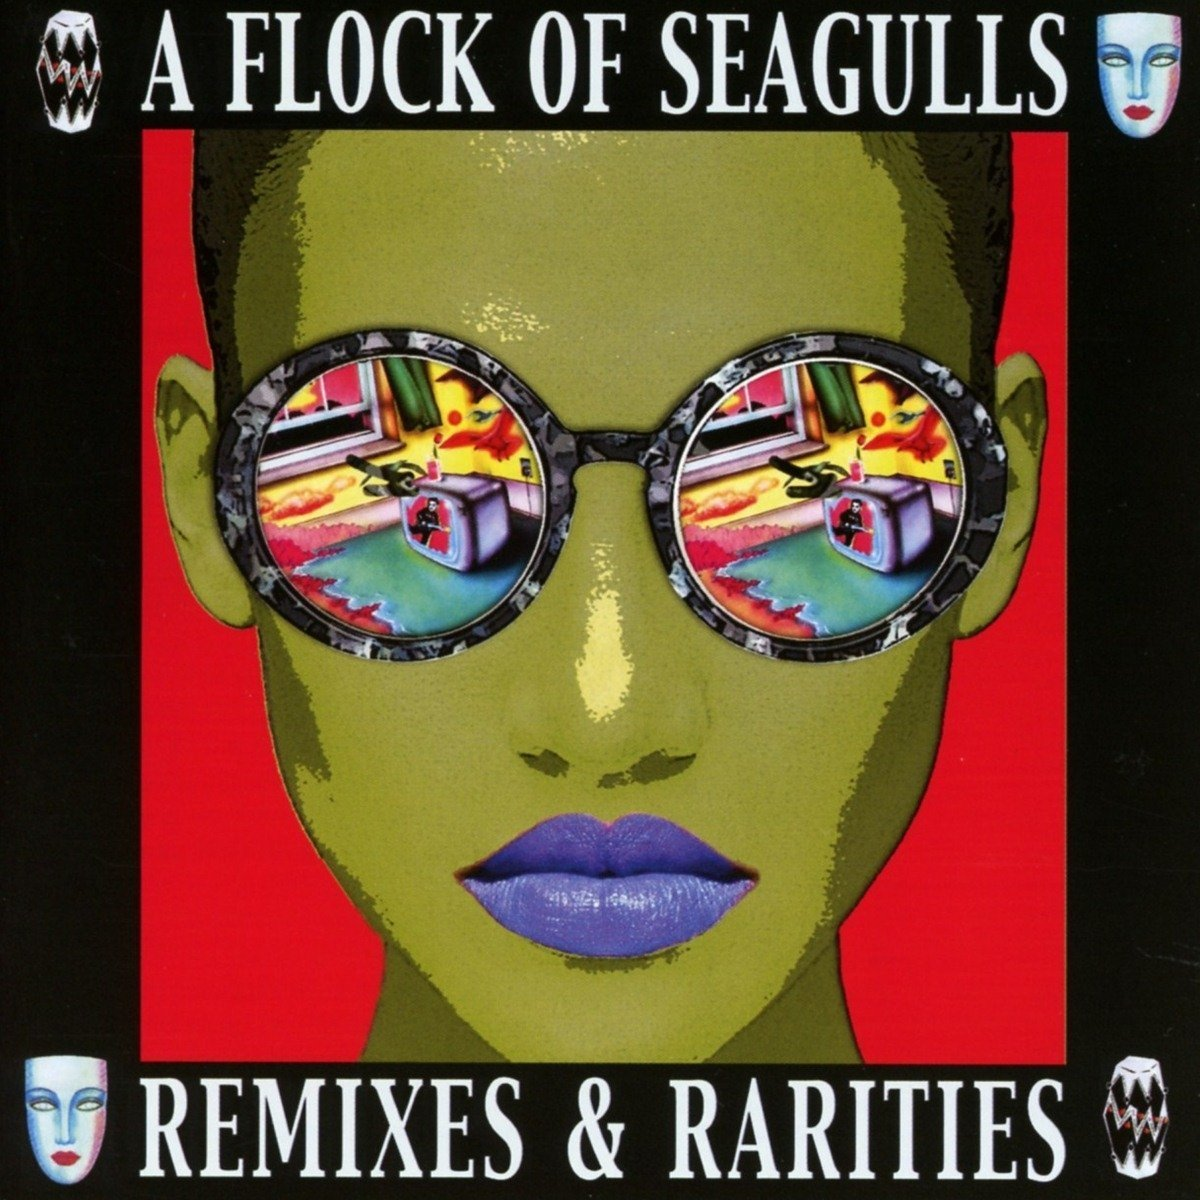 catalog 04 17 Flock of Seagulls